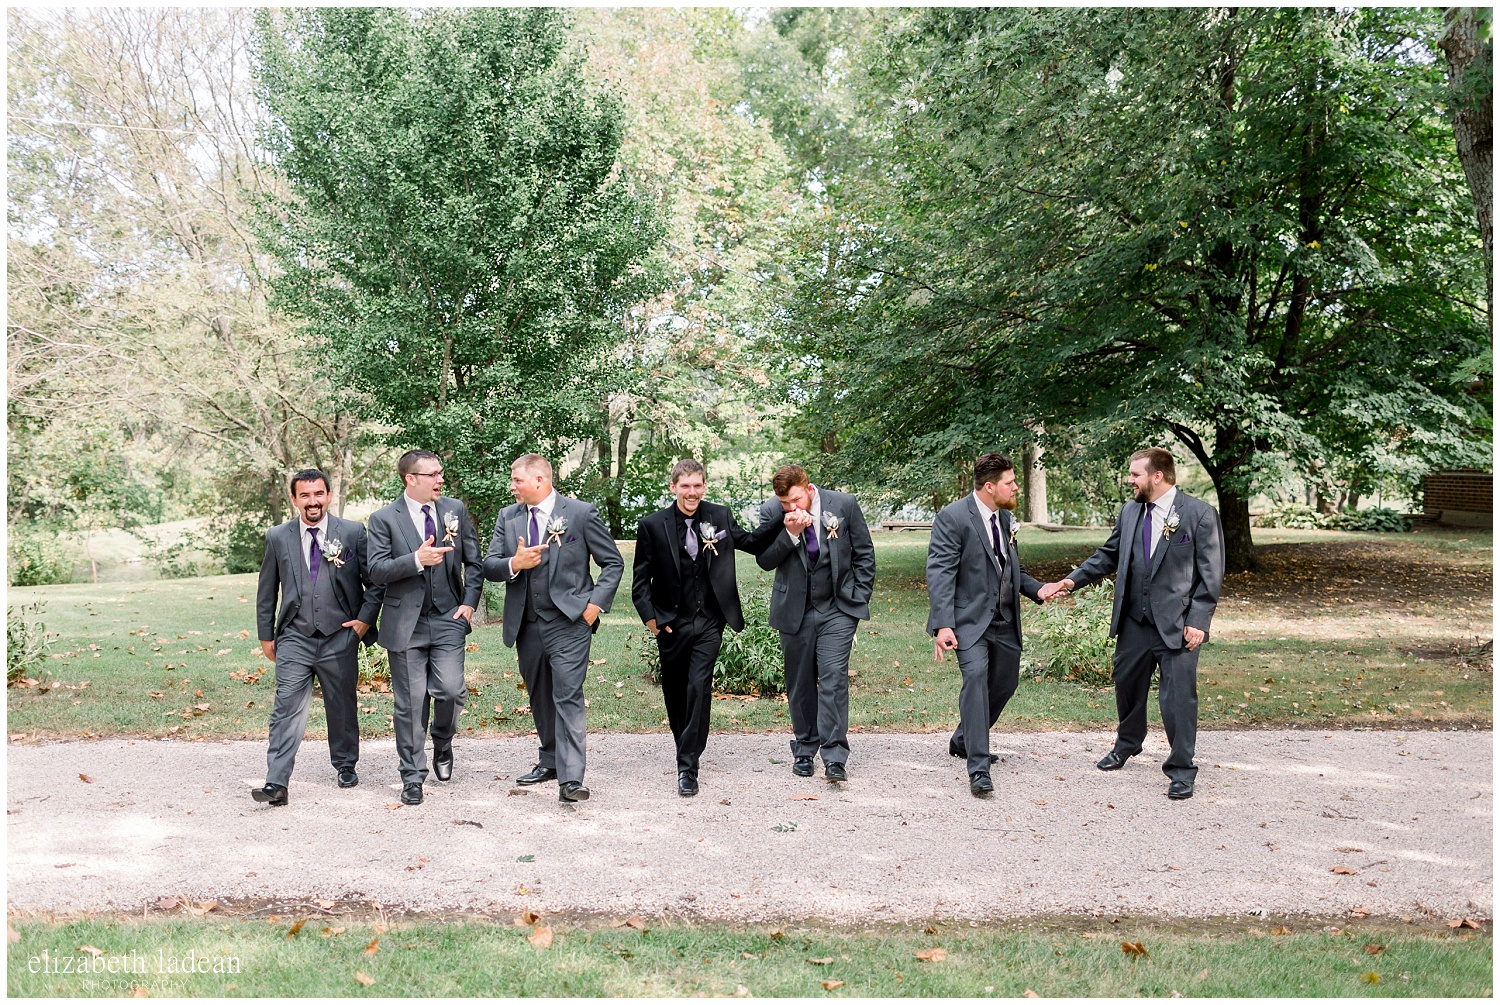 -behind-the-scenes-of-a-wedding-photographer-2018-elizabeth-ladean-photography-photo_3565.jpg